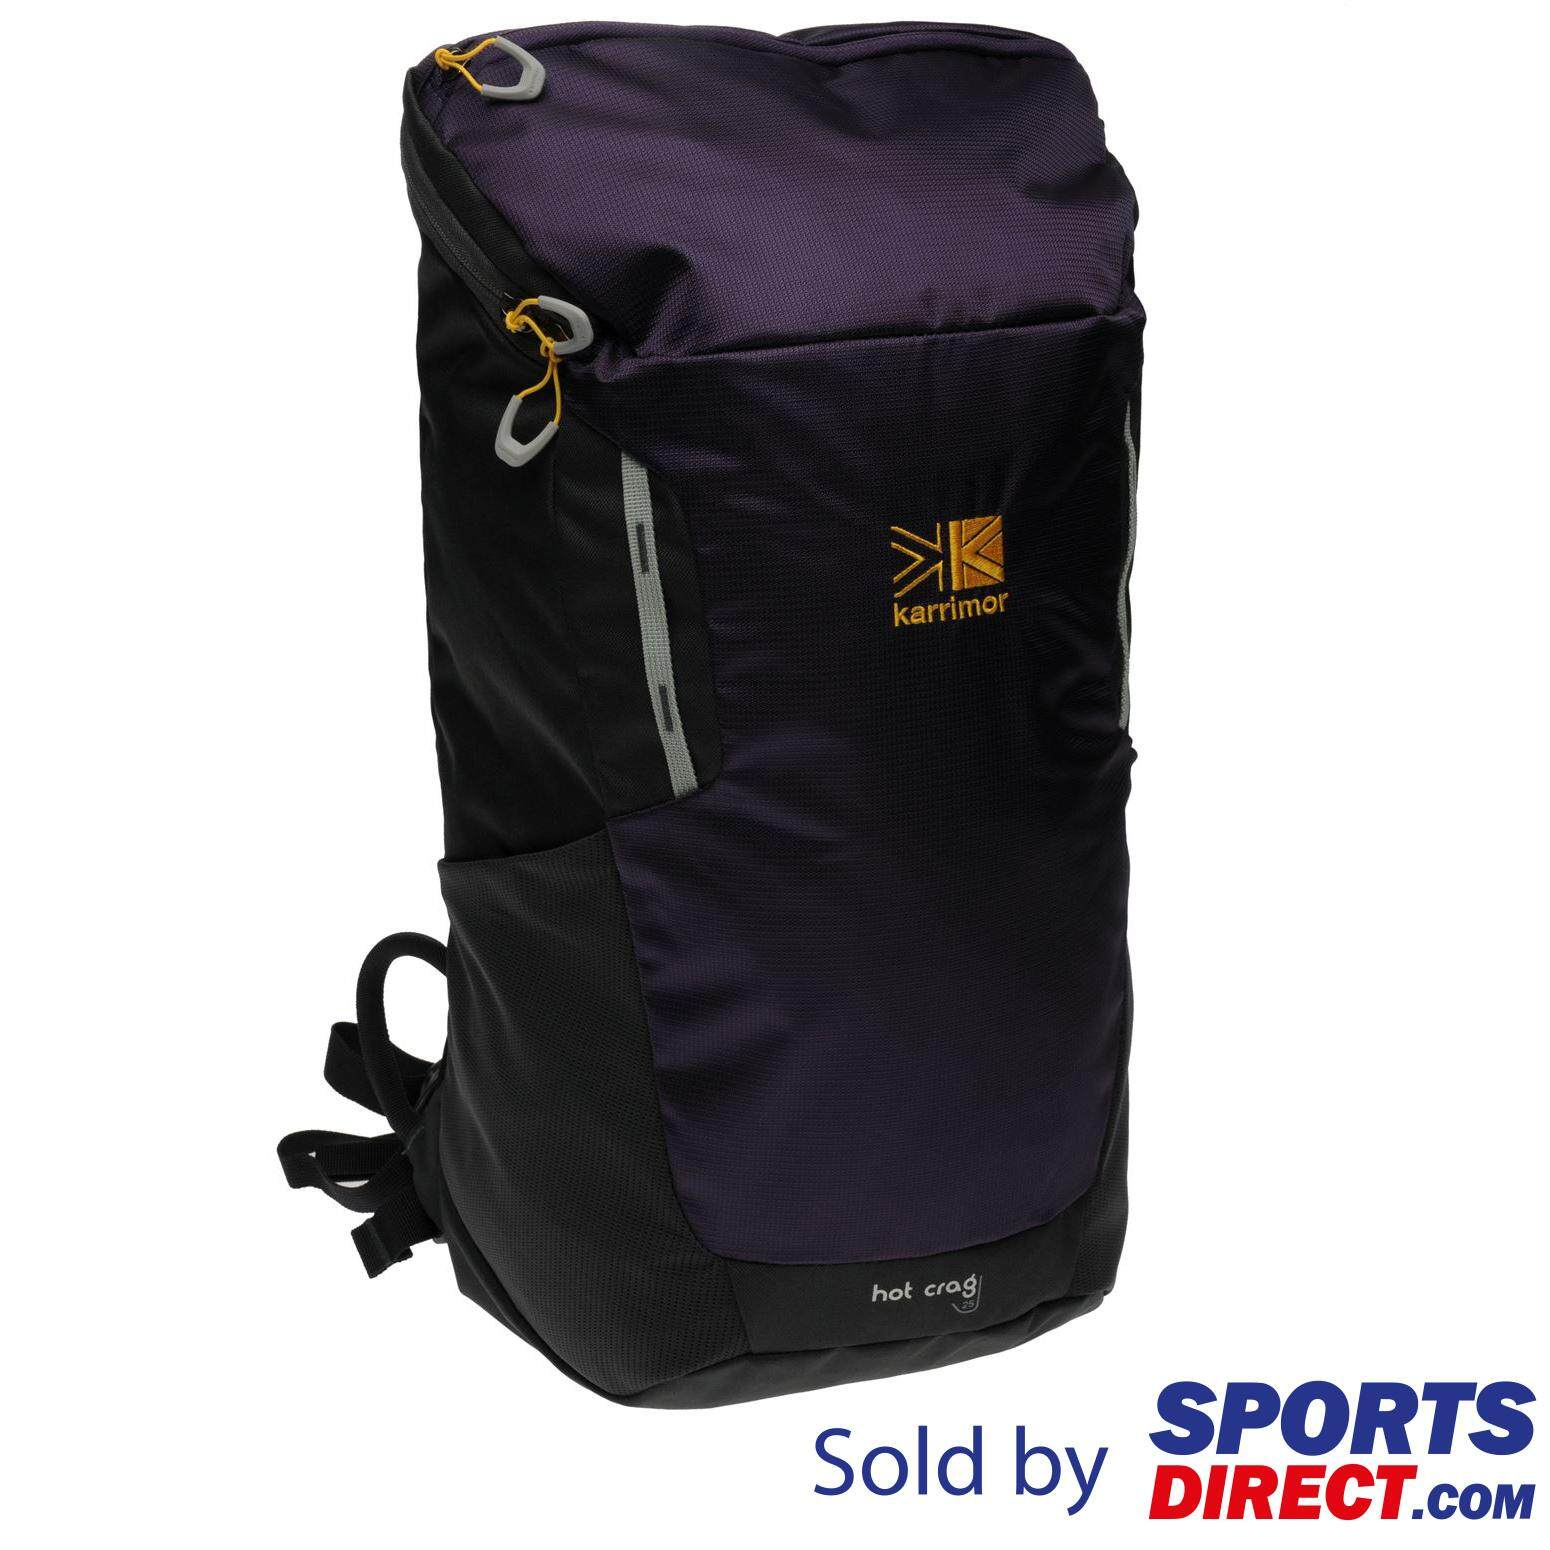 d50519a64495 Men s Sports Bags - Buy Men s Sports Bags at Best Price in Malaysia ...